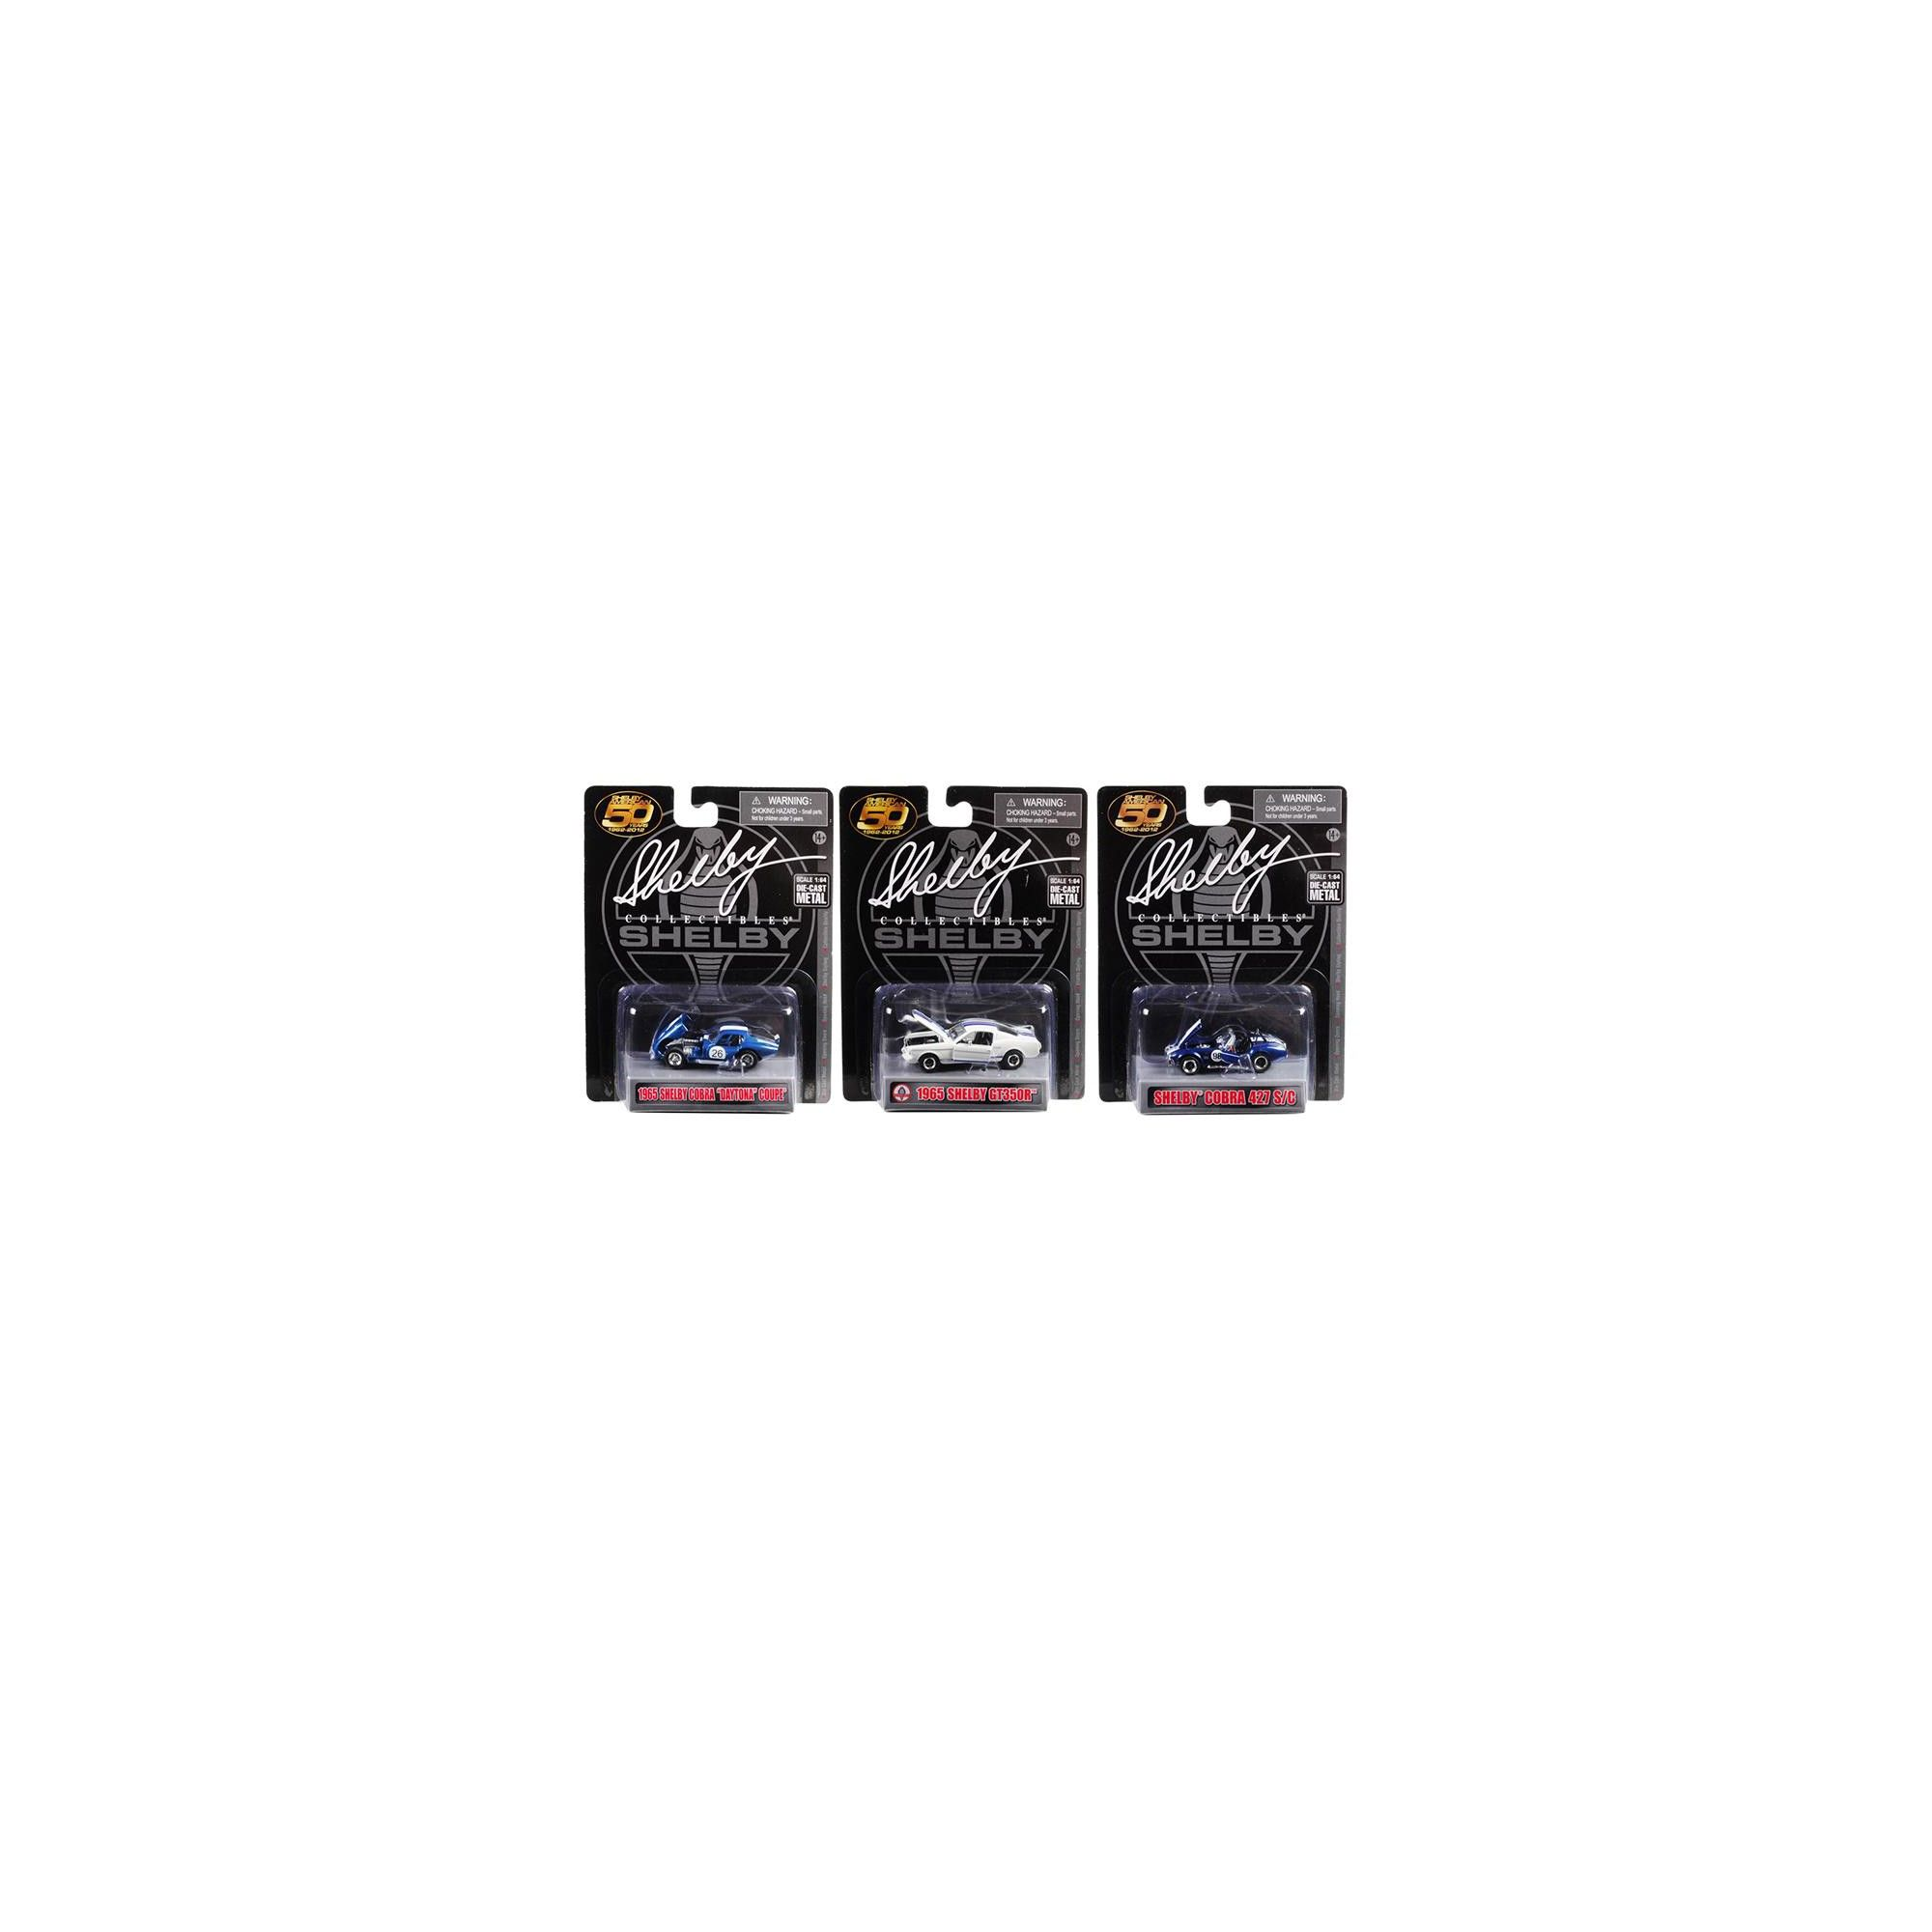 Carroll Shelby 50th Anniversary 3 piece Set 1/64 Diecast Model Cars by Shelby Collectibles